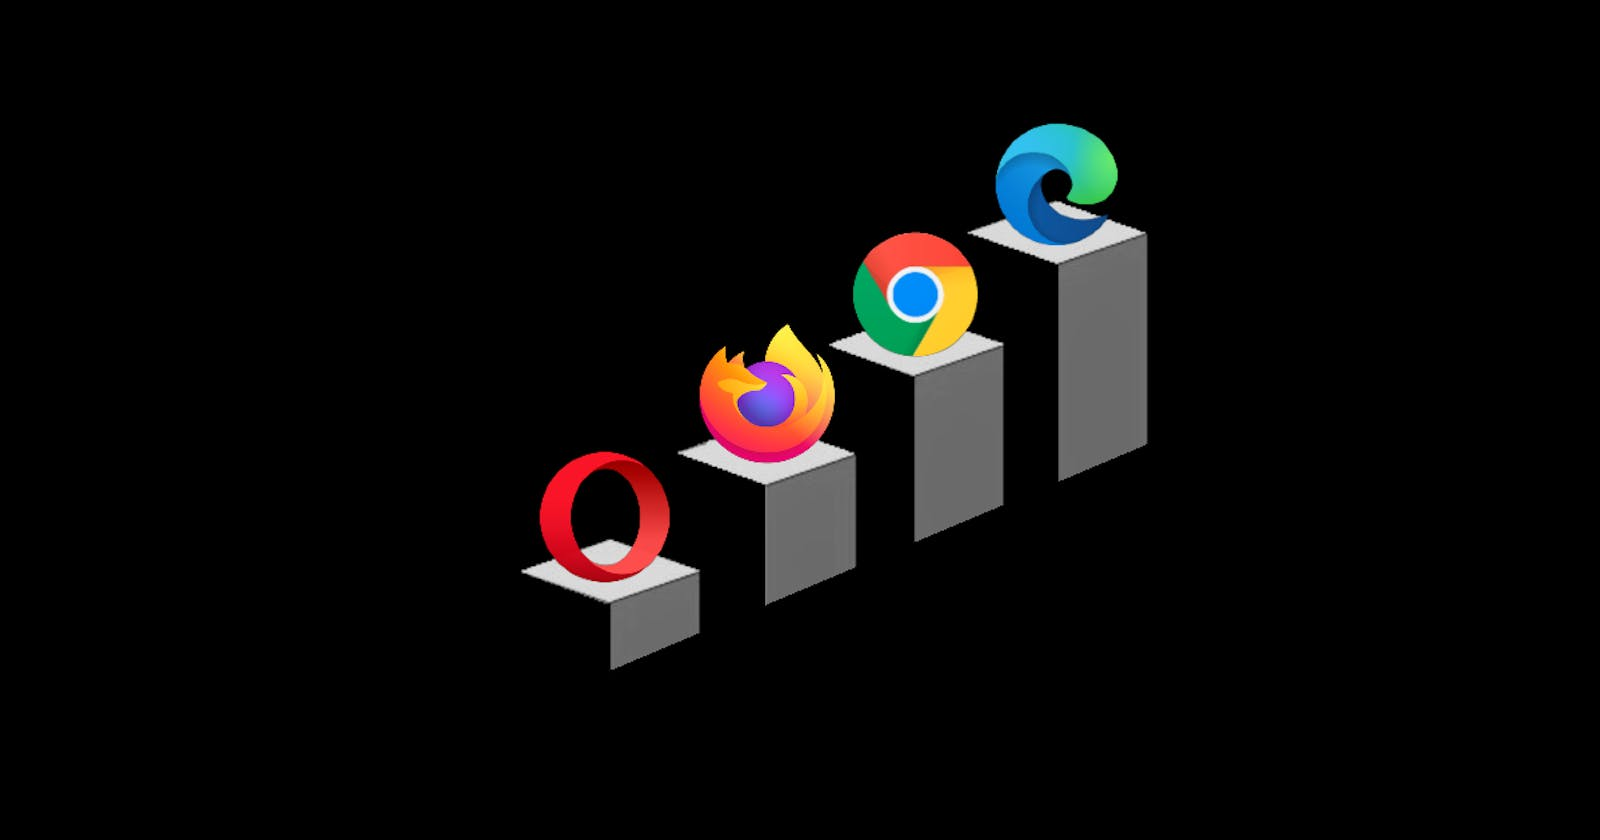 Why Do Developers Consider Moving to the New Edge Browser?